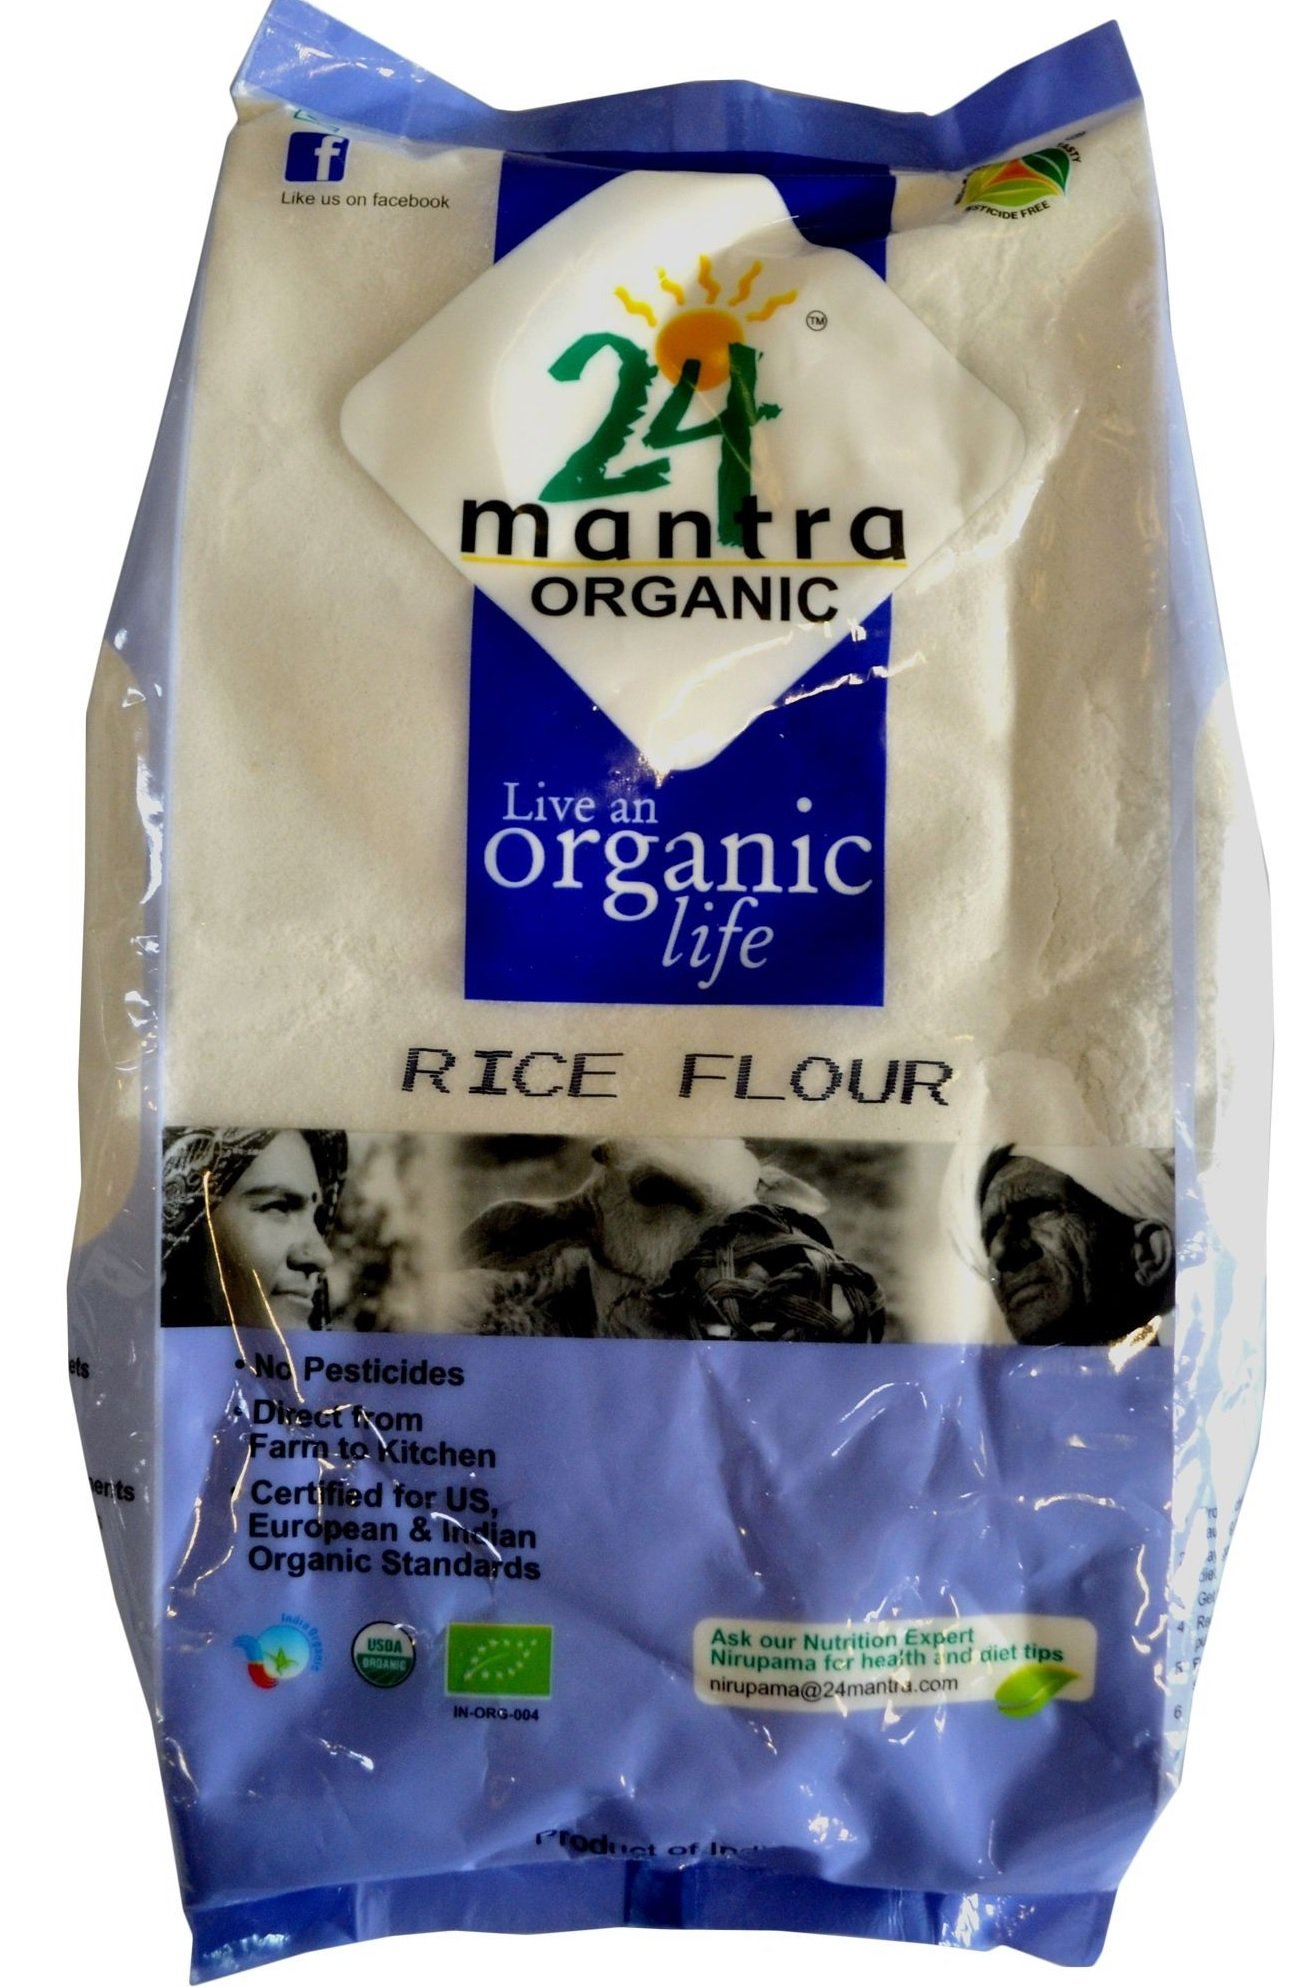 24 Mantra Organic Rice Flour 4 lb by 24 MANTRA